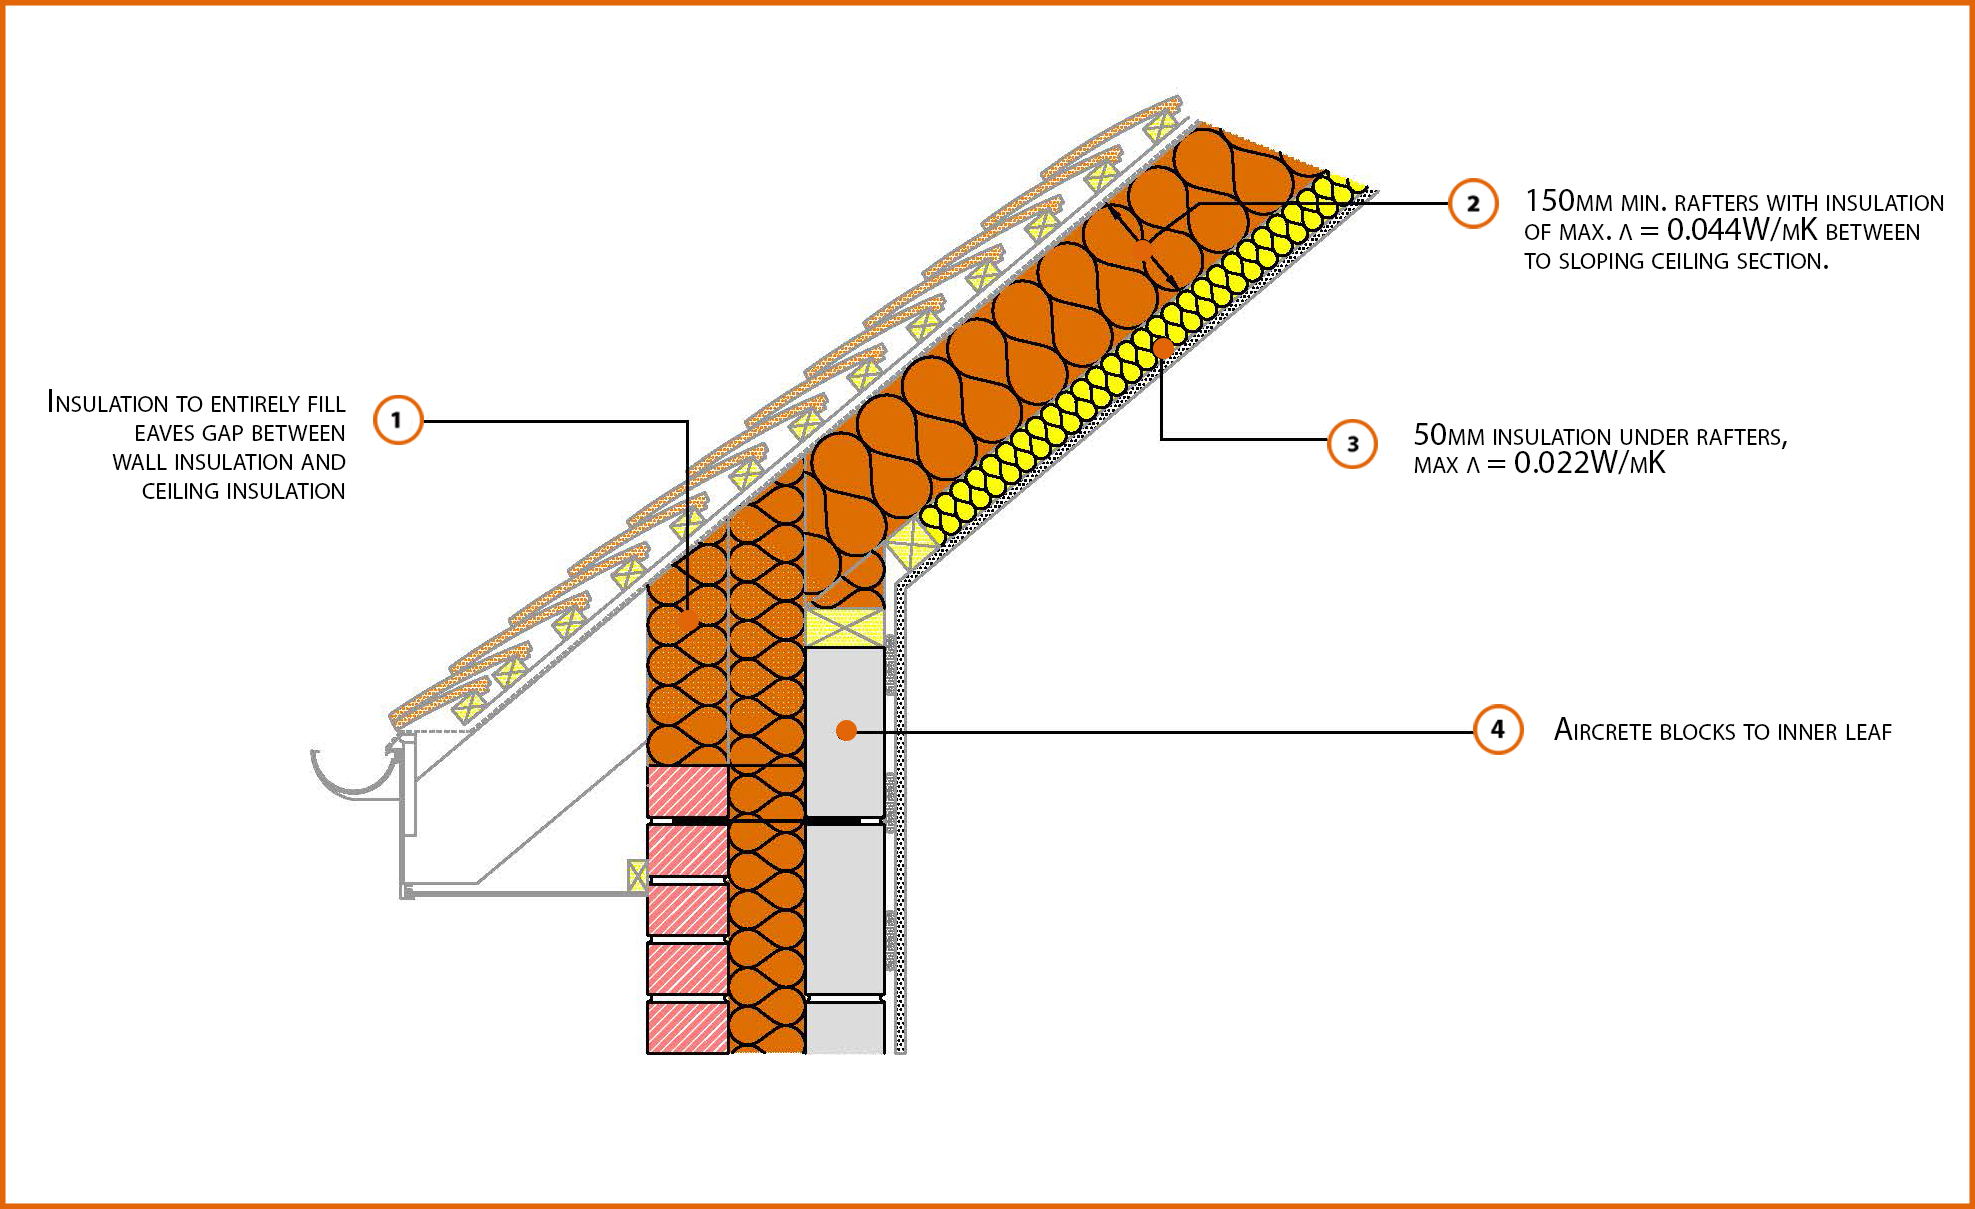 E11mcff5 Pitched Roof Eaves Insulation At Rafter Level